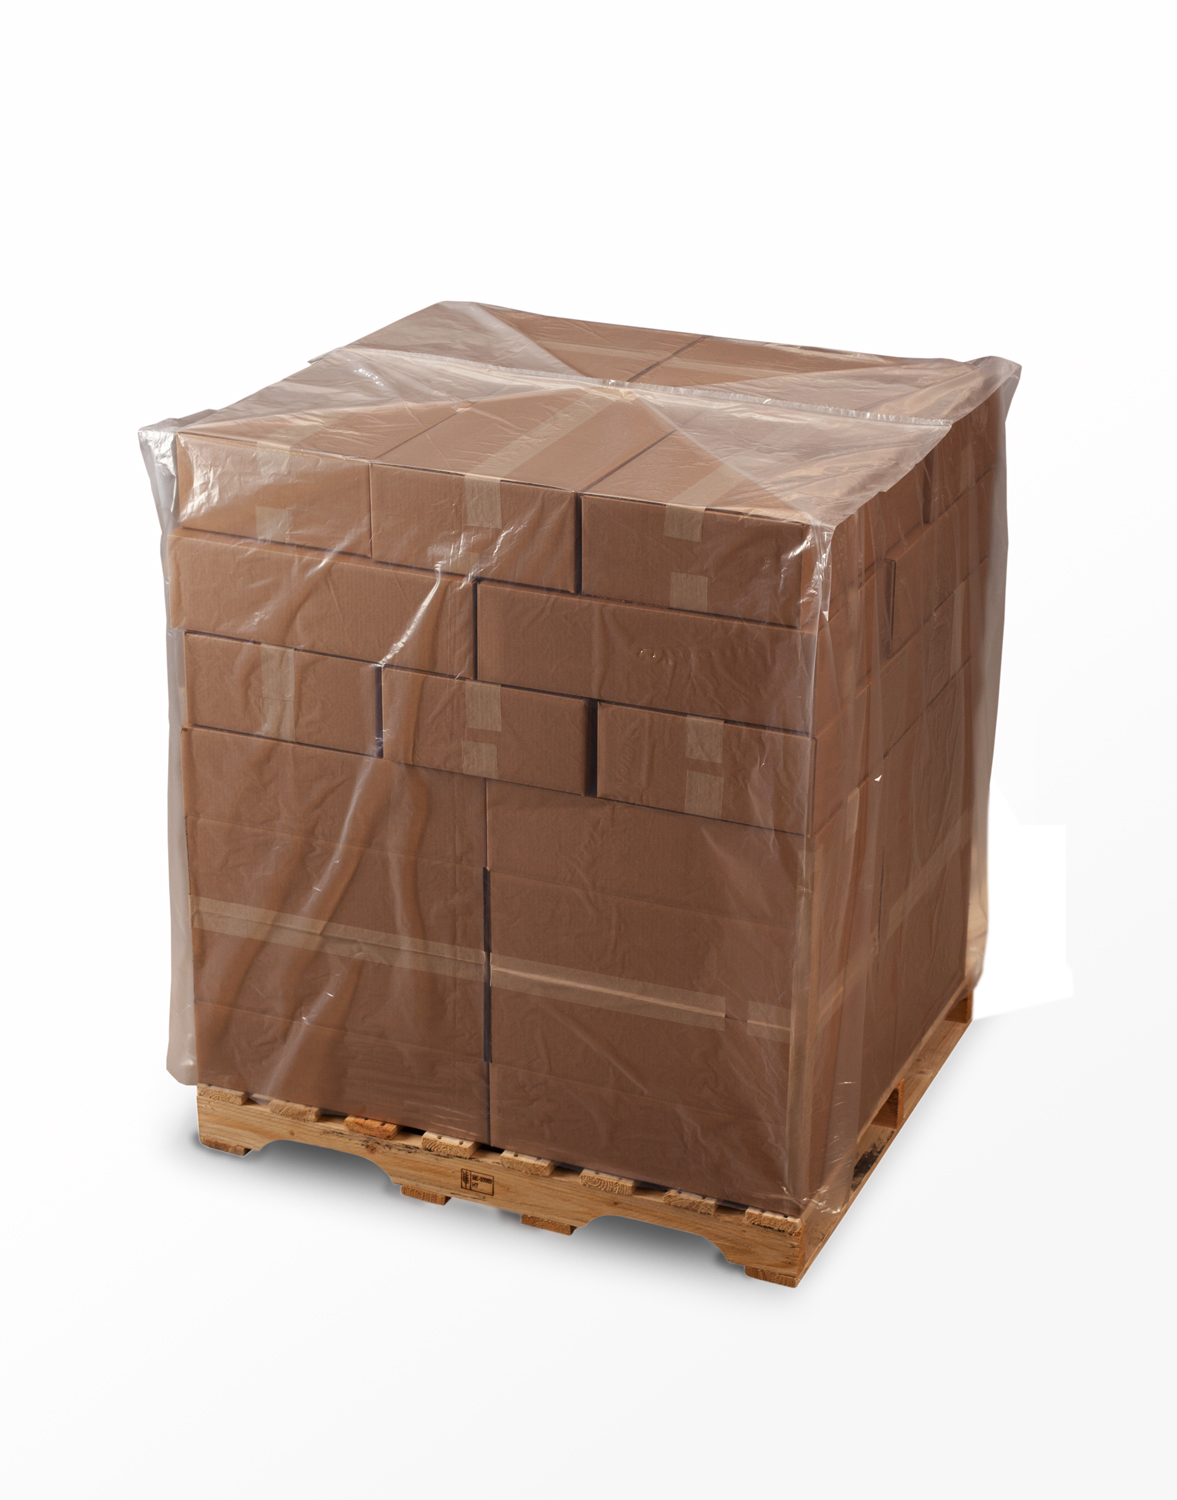 Clear Pallet Covers on Roll 51 x 49 x 97 x 4 Mil (49 in gusset) Roll:20